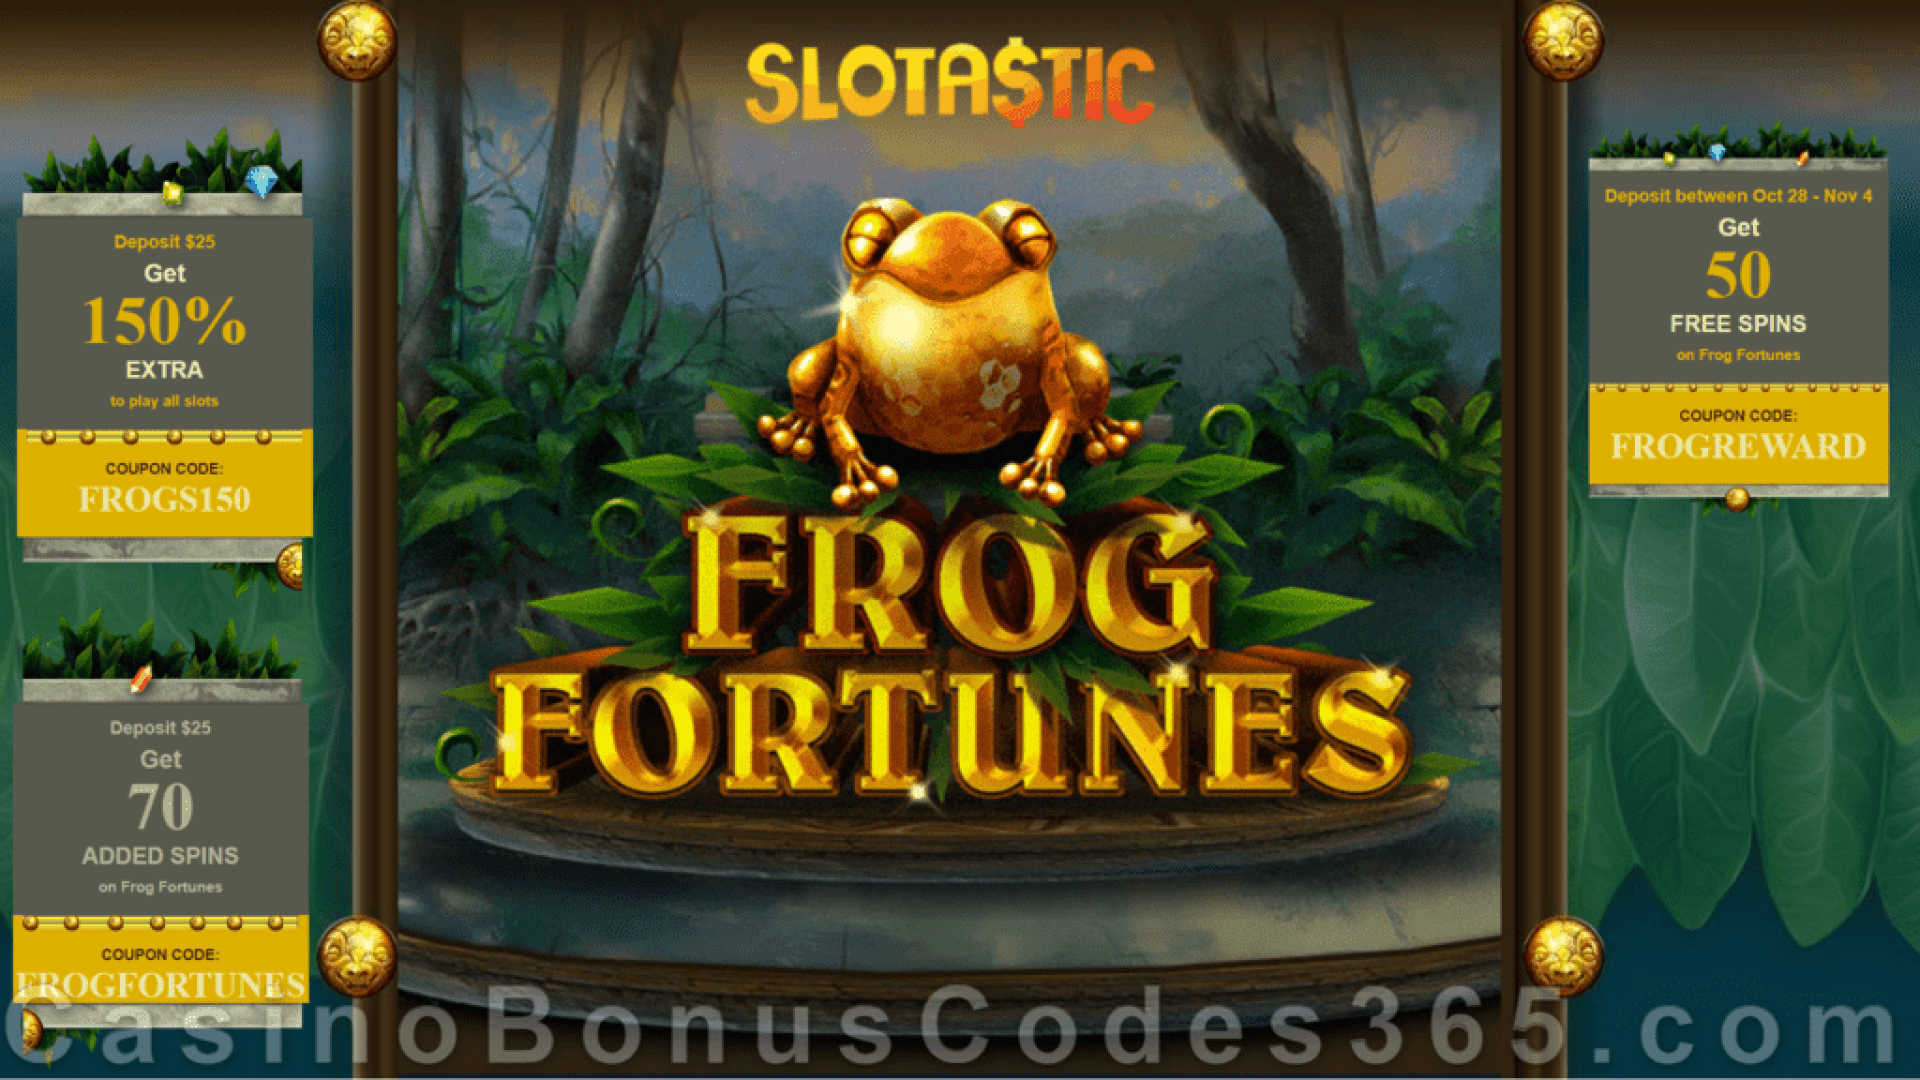 Slotastic Online Casino New RTG Game Frog Fortunes Bonus and FREE Spins Special Promotion